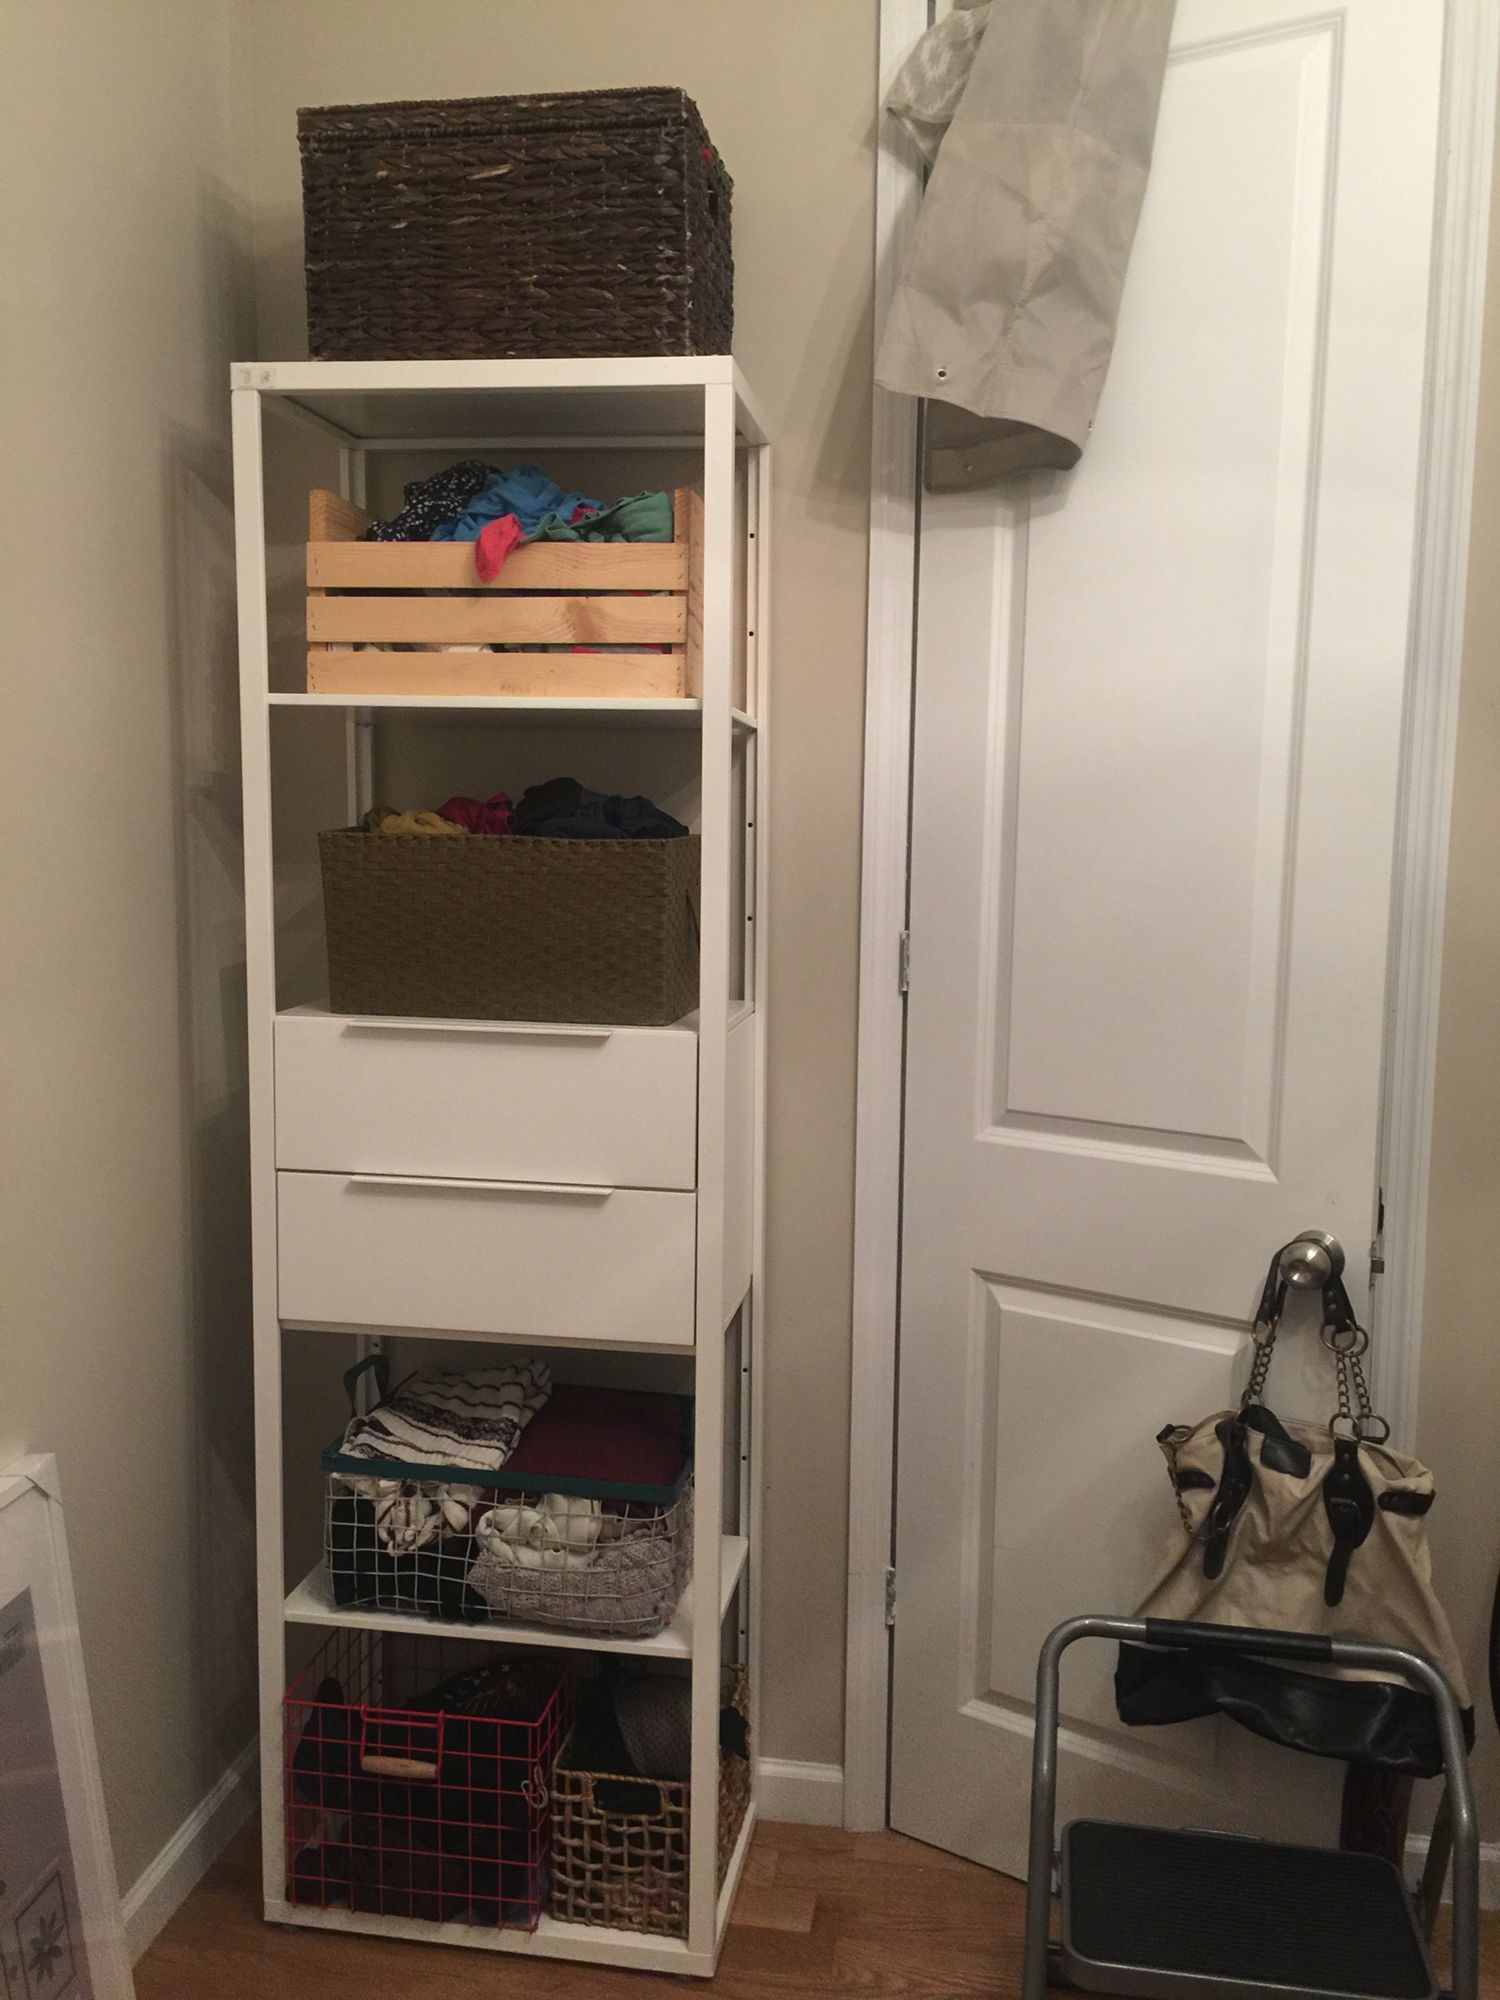 Clothes storage alternative space saving option to dresser From